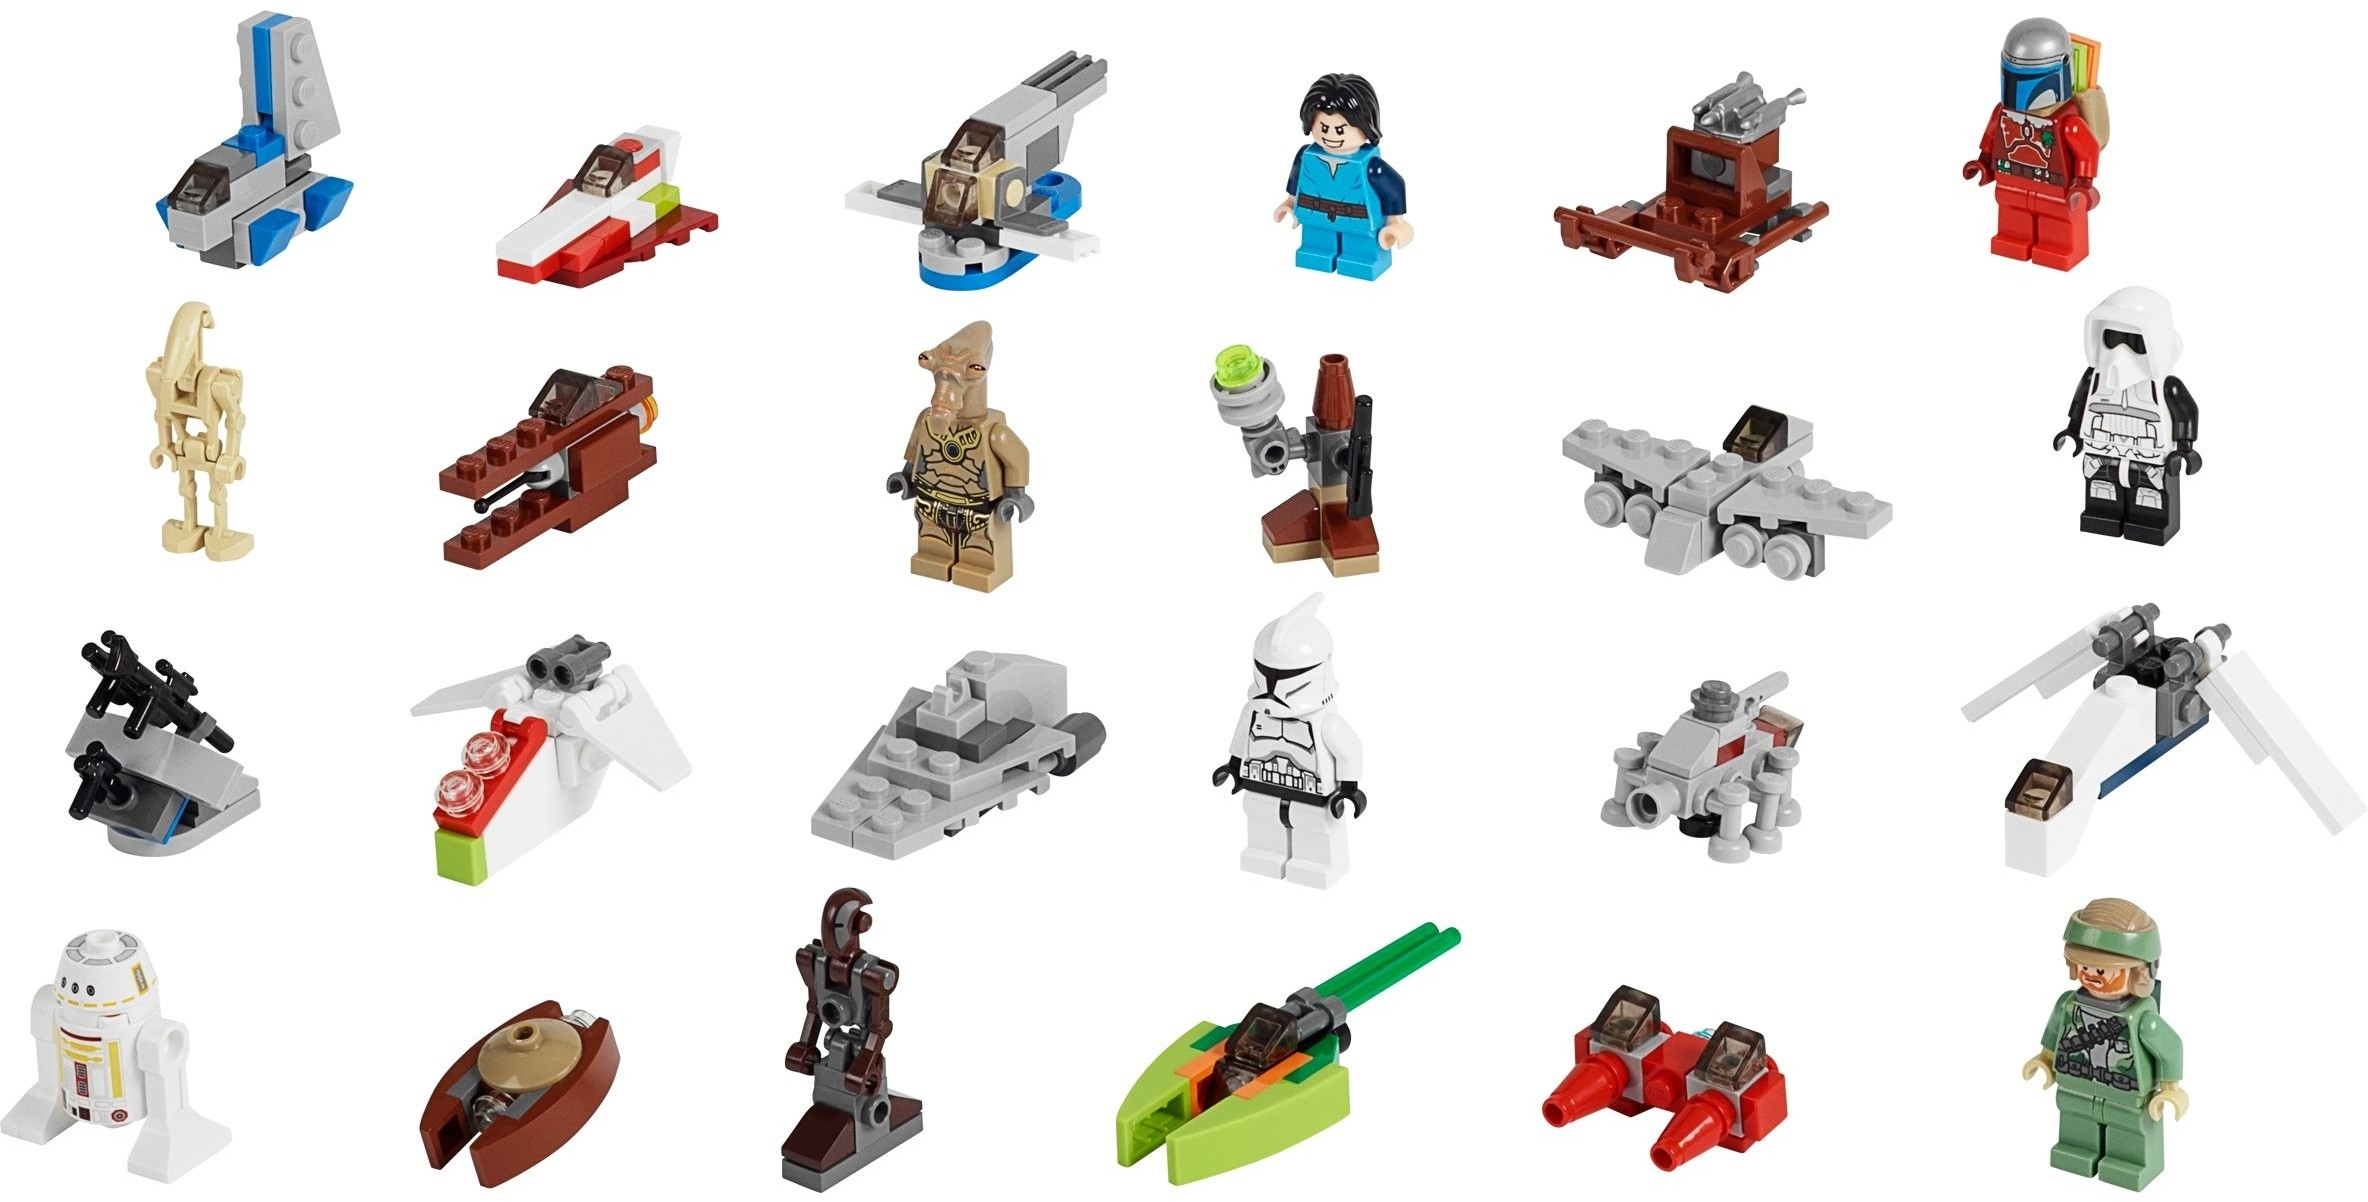 Lego Star Wars Advent Calendar Instructions 75023, Star Wars with Lego Star Wars Advent Calendar 7958 Instructions